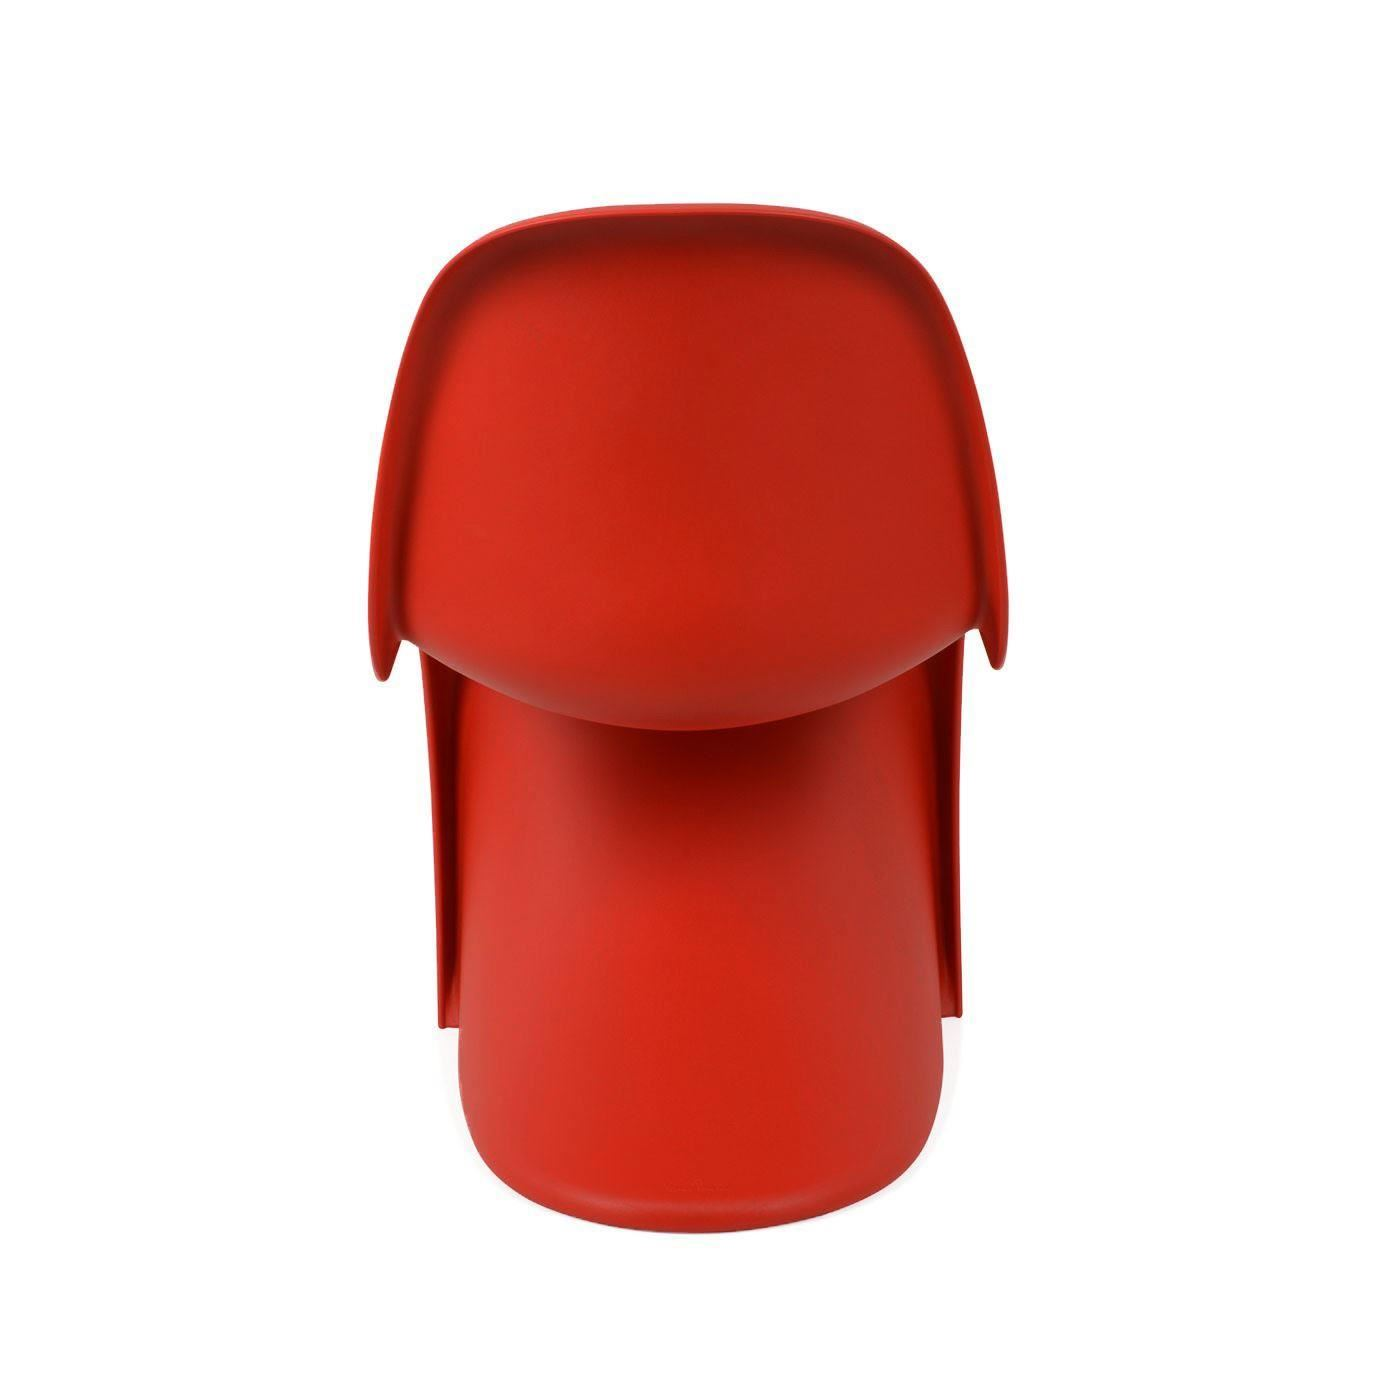 s chair replica two seater lawn set of 4 panton stackable modern dining ebay